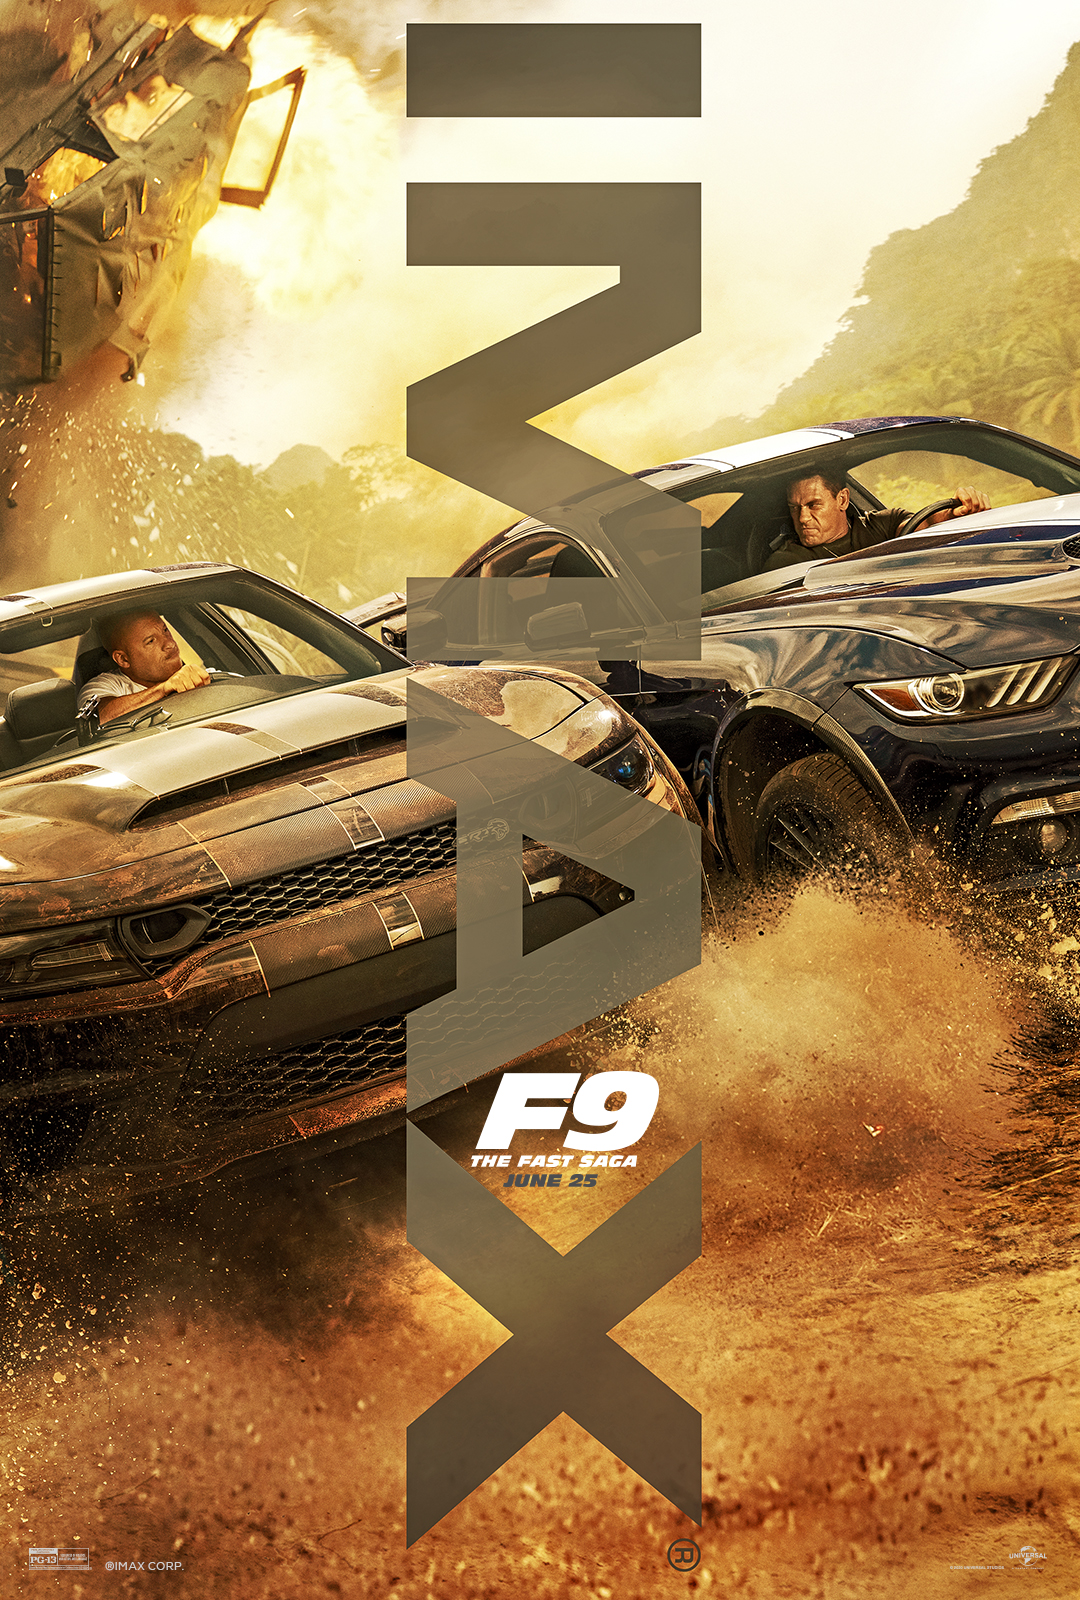 Movie poster image for F9 THE FAST SAGA in IMAX